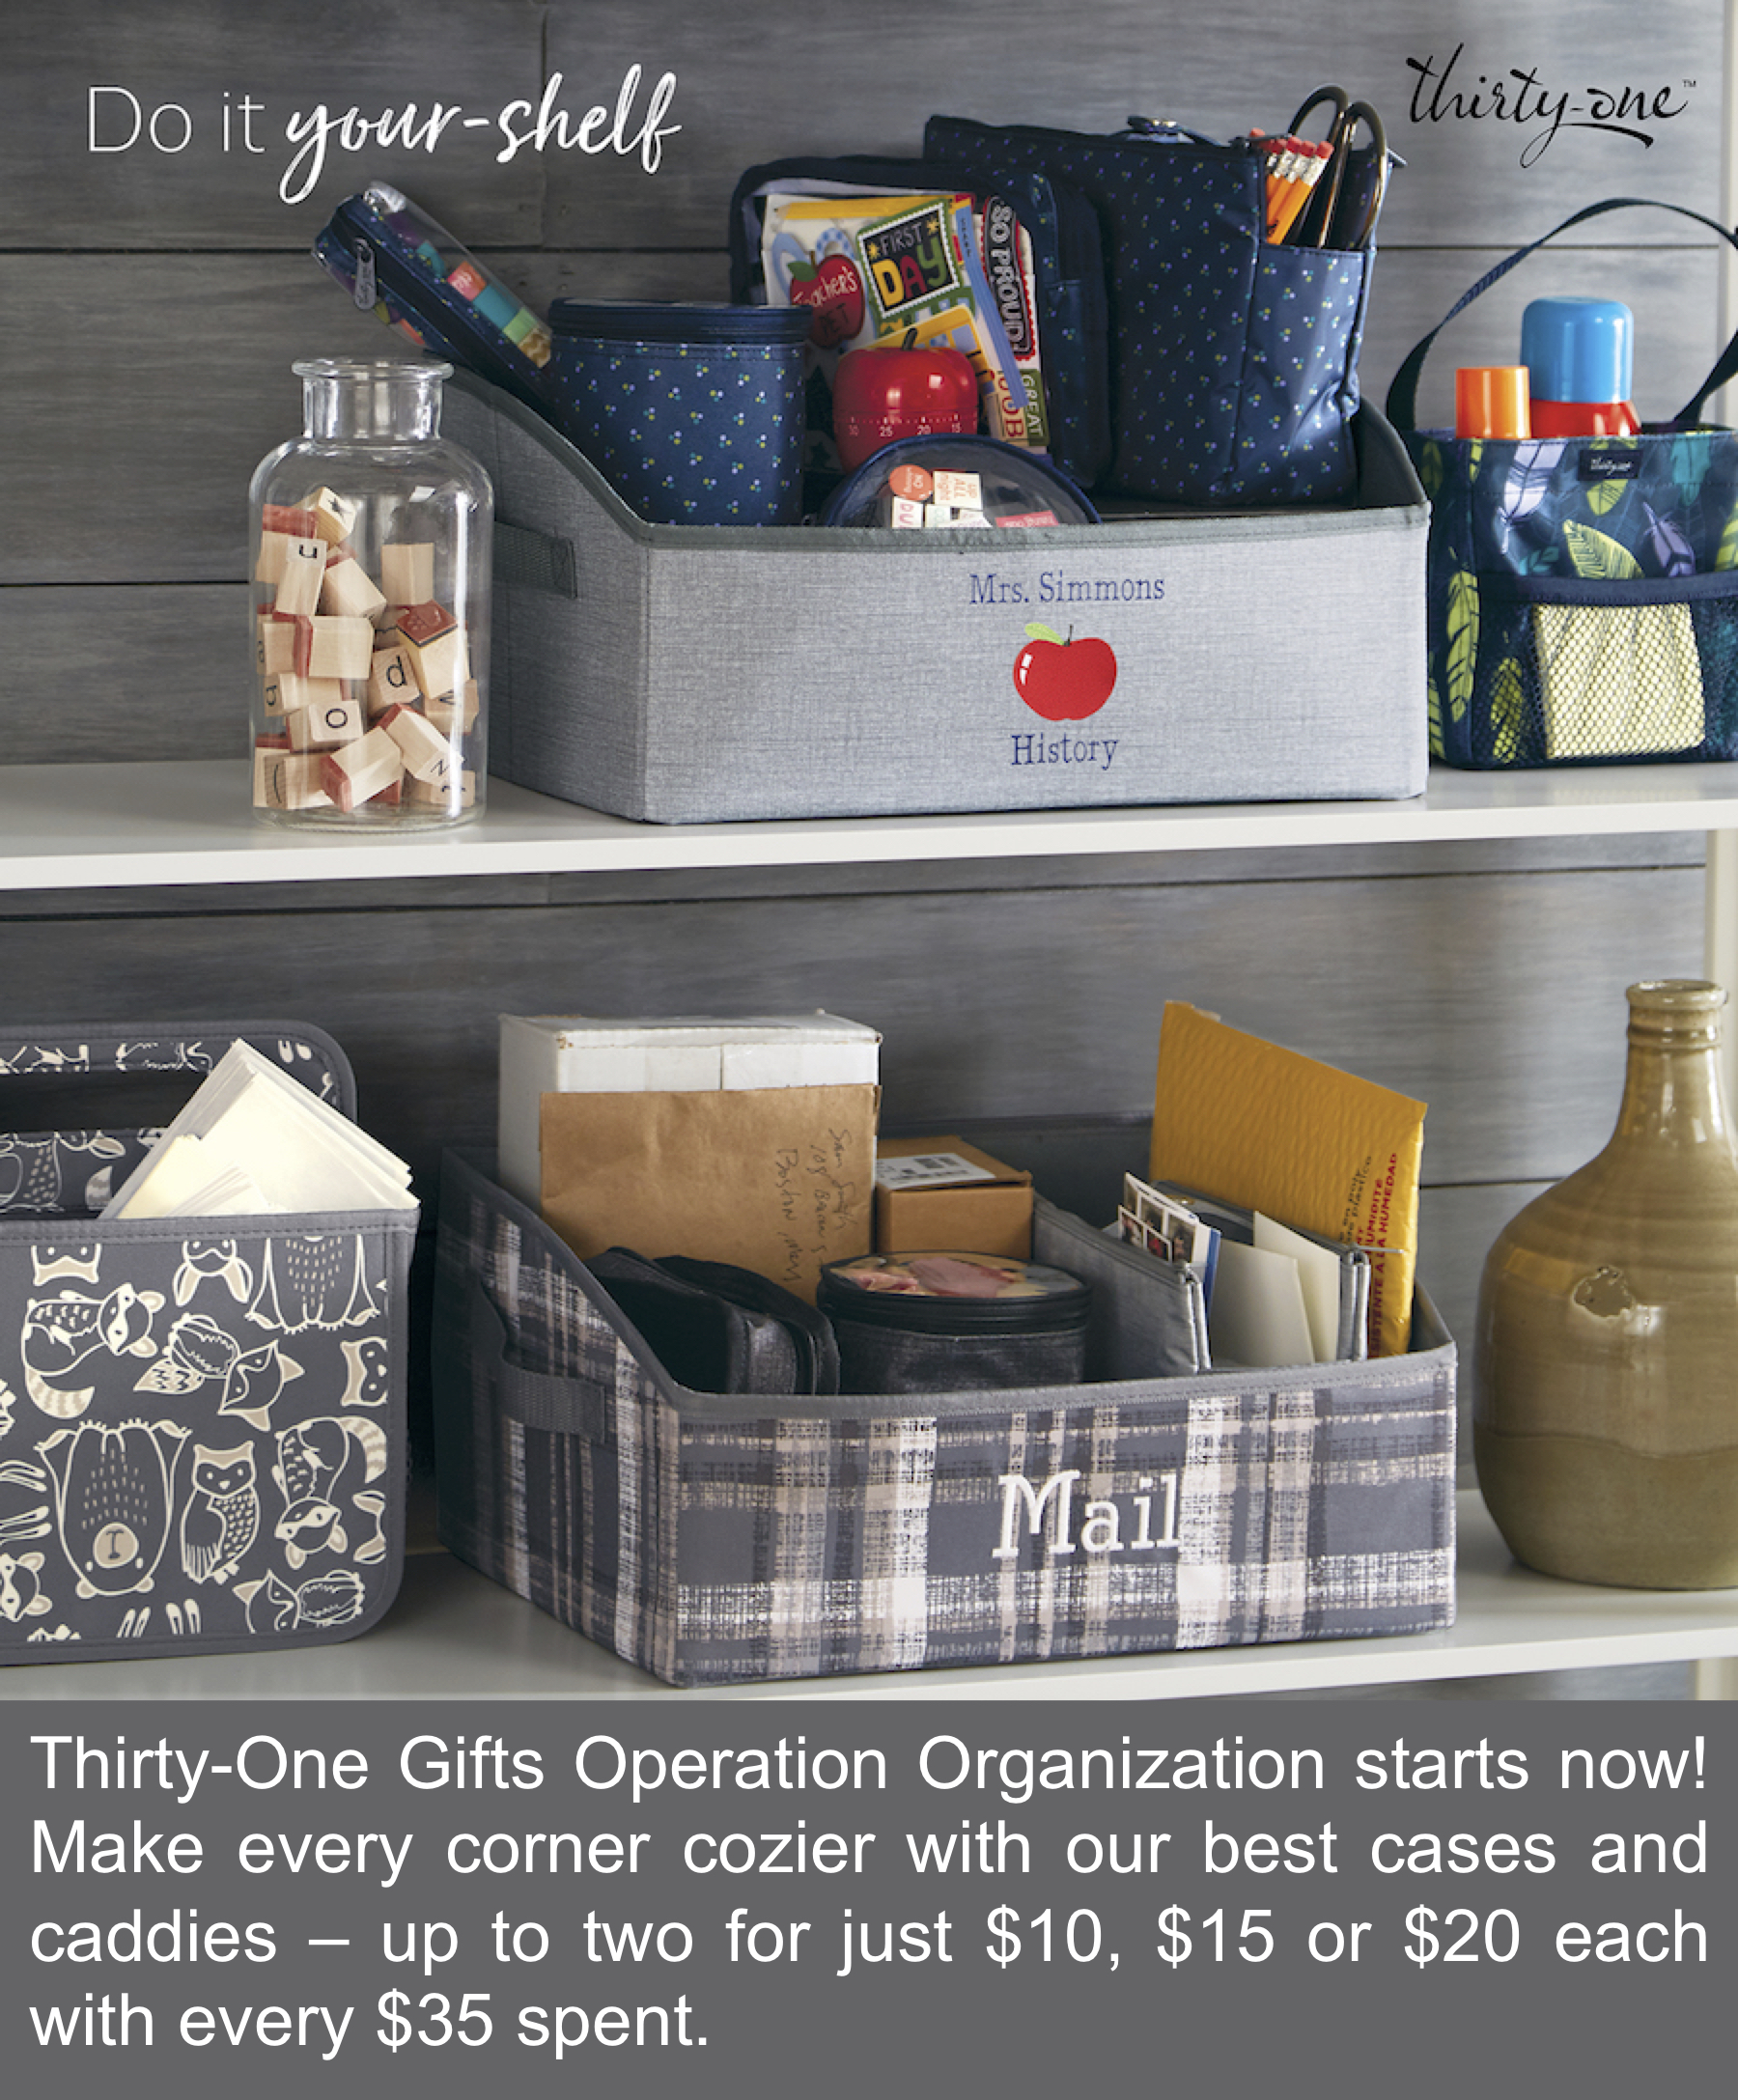 Thirty-One Gifts Operation Organization